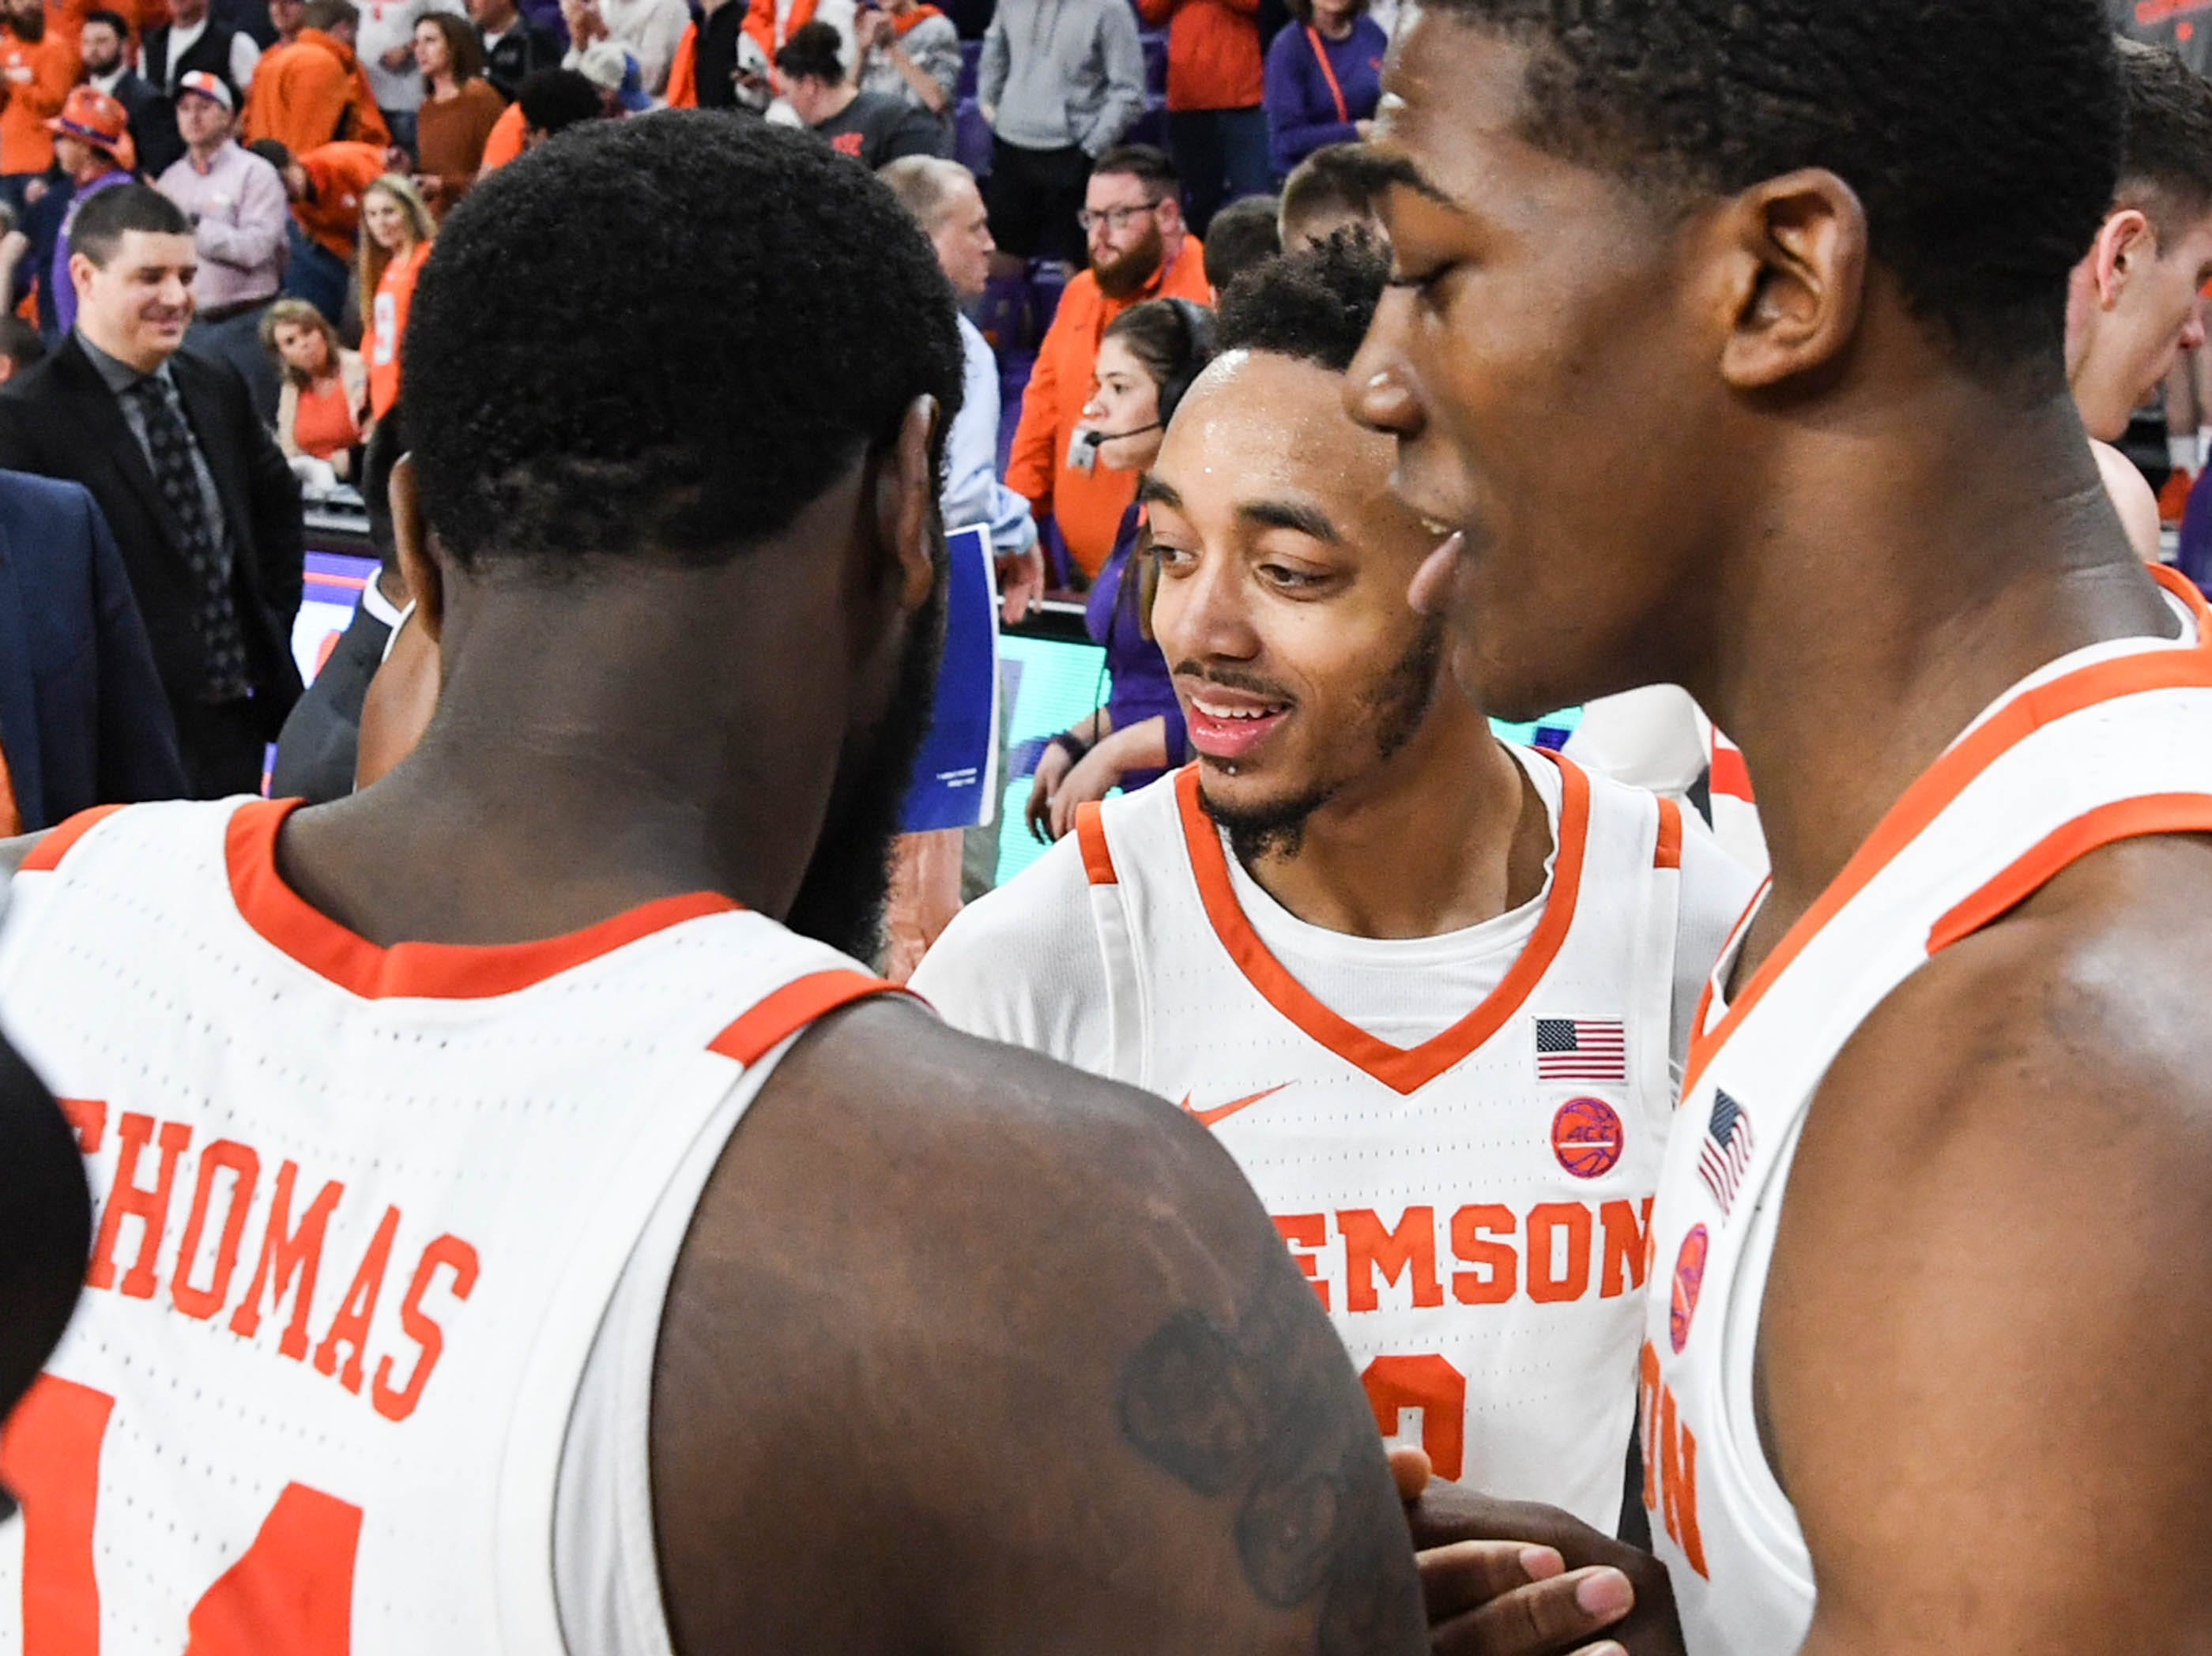 Clemson forward Elijah Thomas (14), left, guard Marcquise Reed (2), and center Trey Jemison (55) celebrates a 67-55 win over Syracuse in Littlejohn Coliseum Saturday, March 9, 2019.